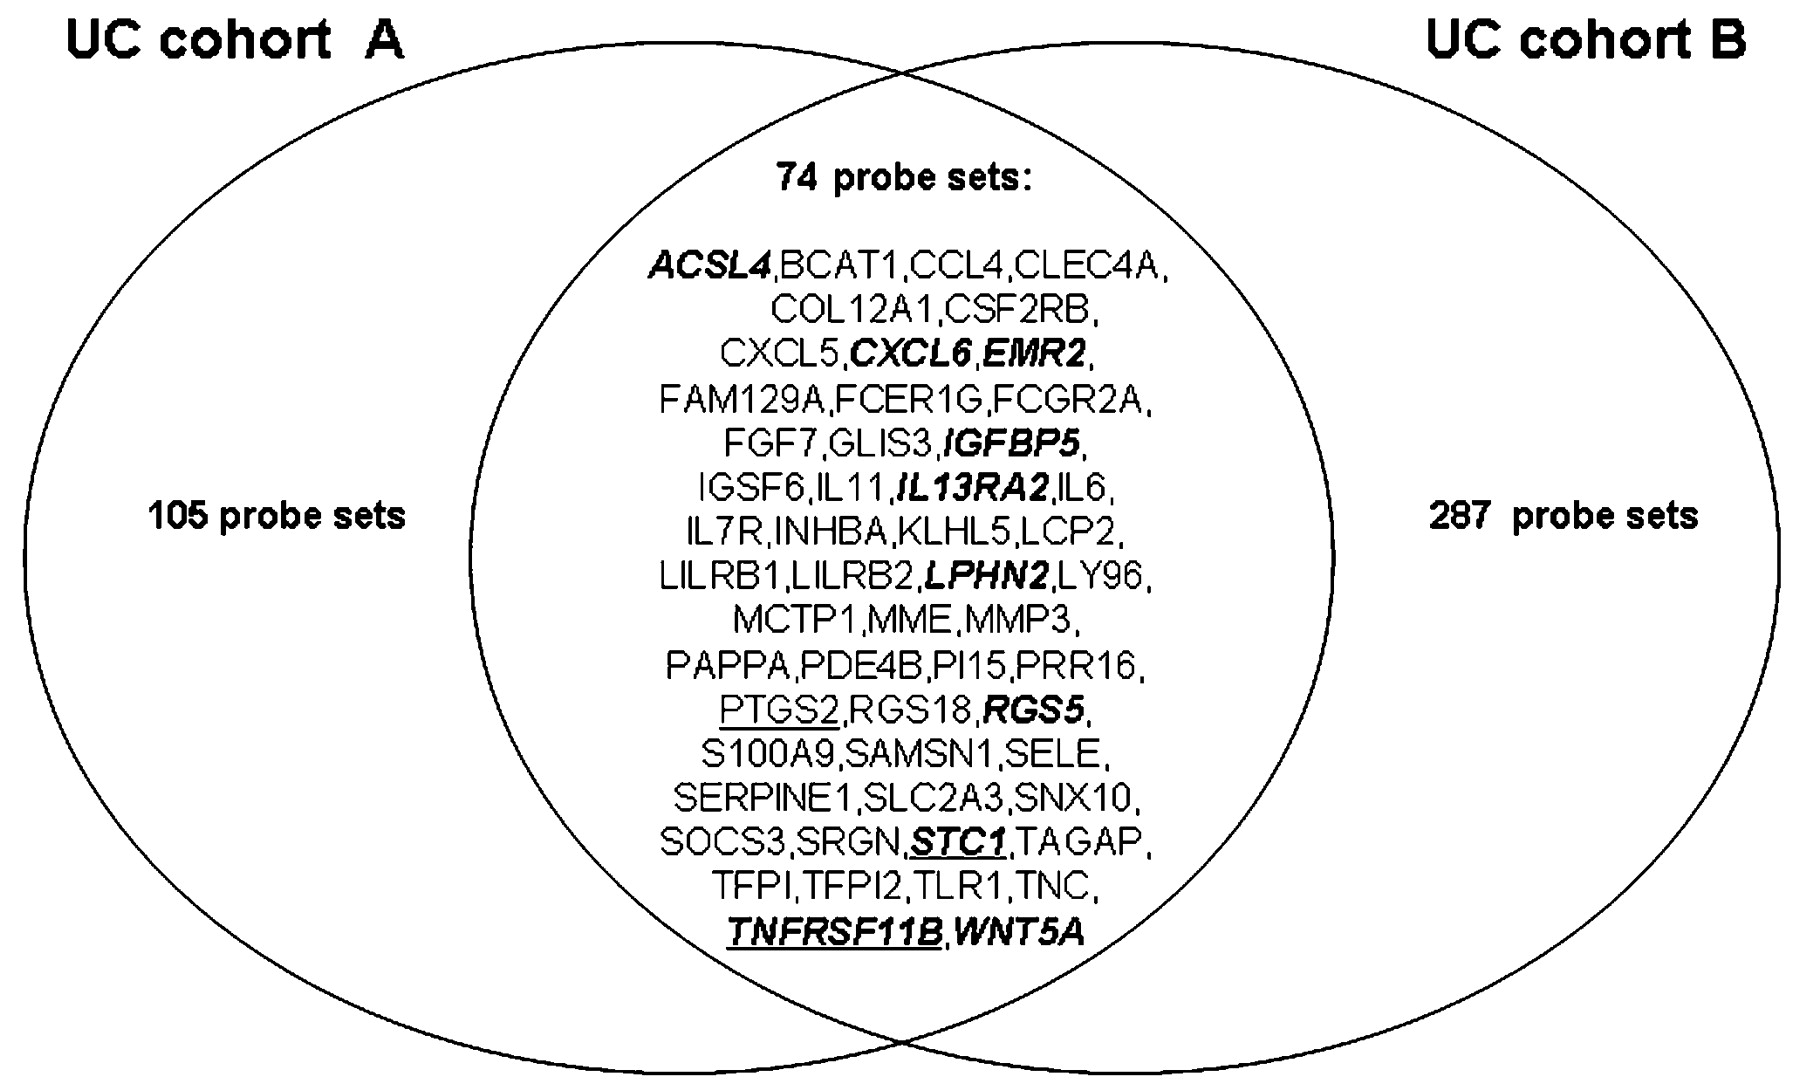 Mucosal Gene Signatures To Predict Response To Infliximab